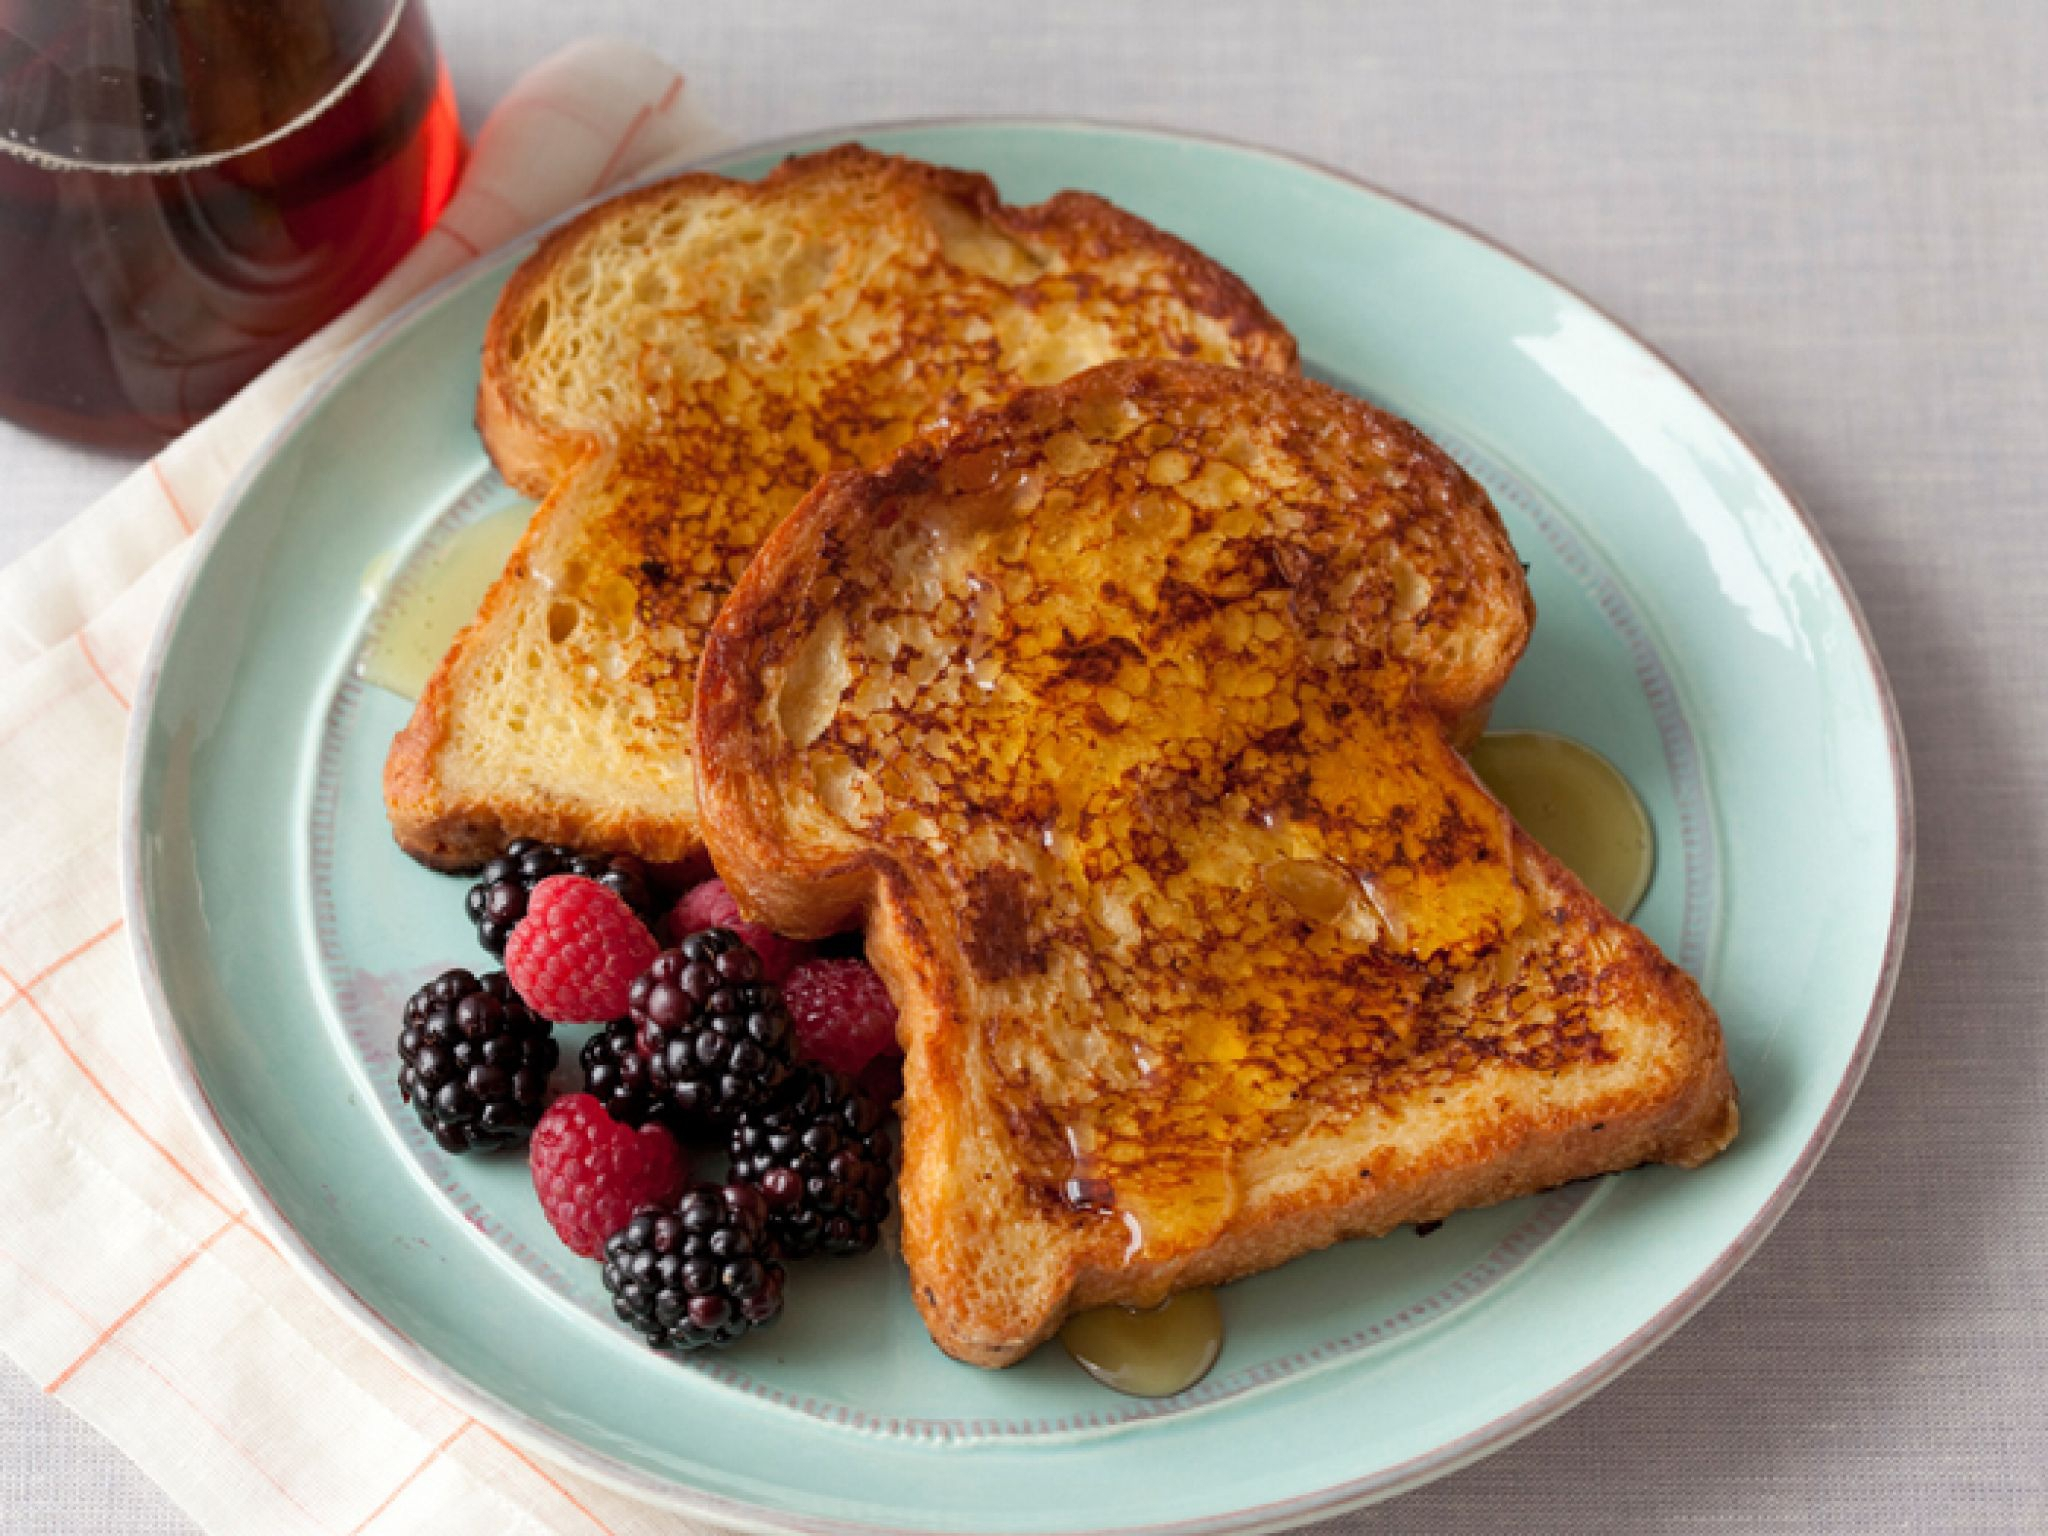 French Toast Hd Background